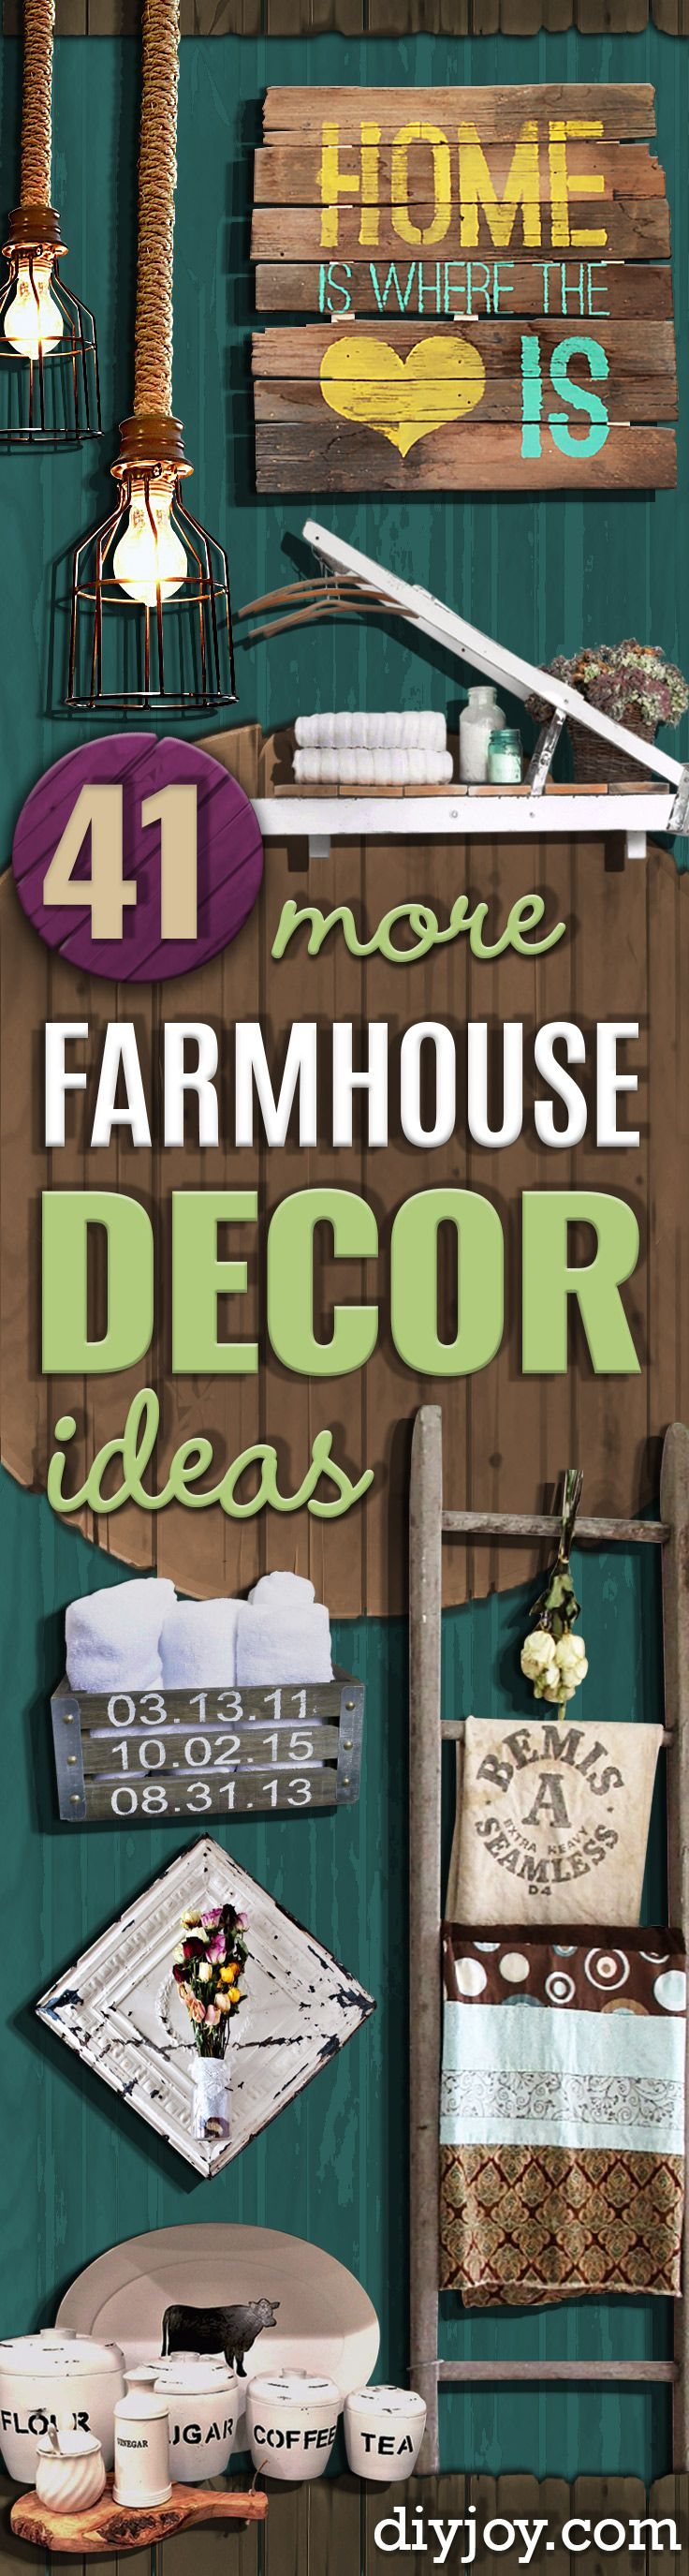 DIY Farmhouse Decor Ideas - Creative Rustic Ideas for Cool Furniture, Paint Colors, Farm House Style Decoration for Living Room, Kitchen and Bedroom http://diyjoy.com/diy-farmhouse-decor-projects